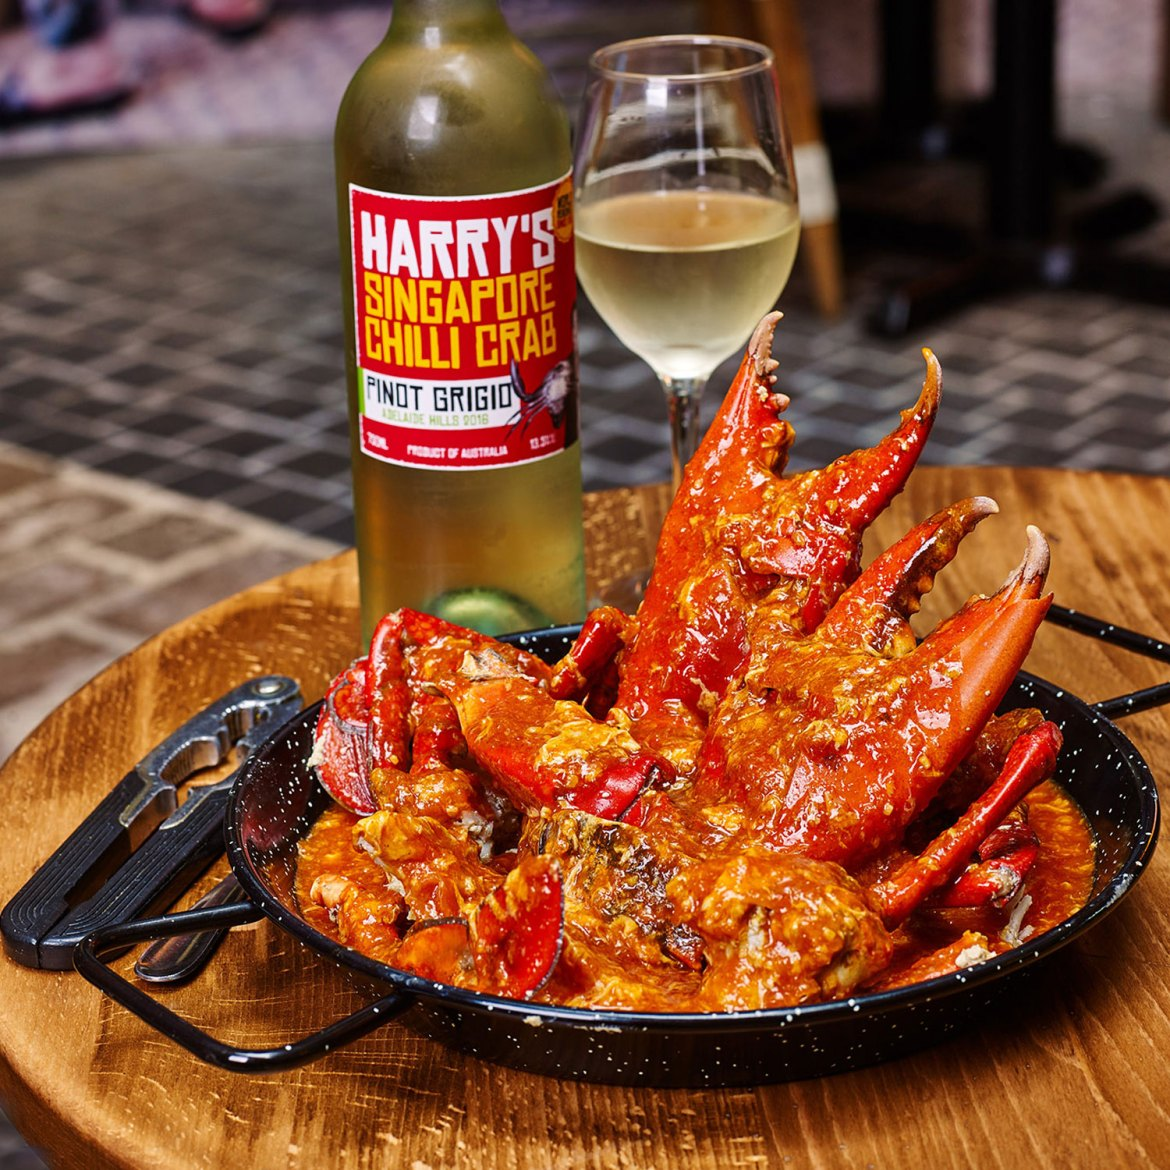 Harry's Singapore Chilli Crab